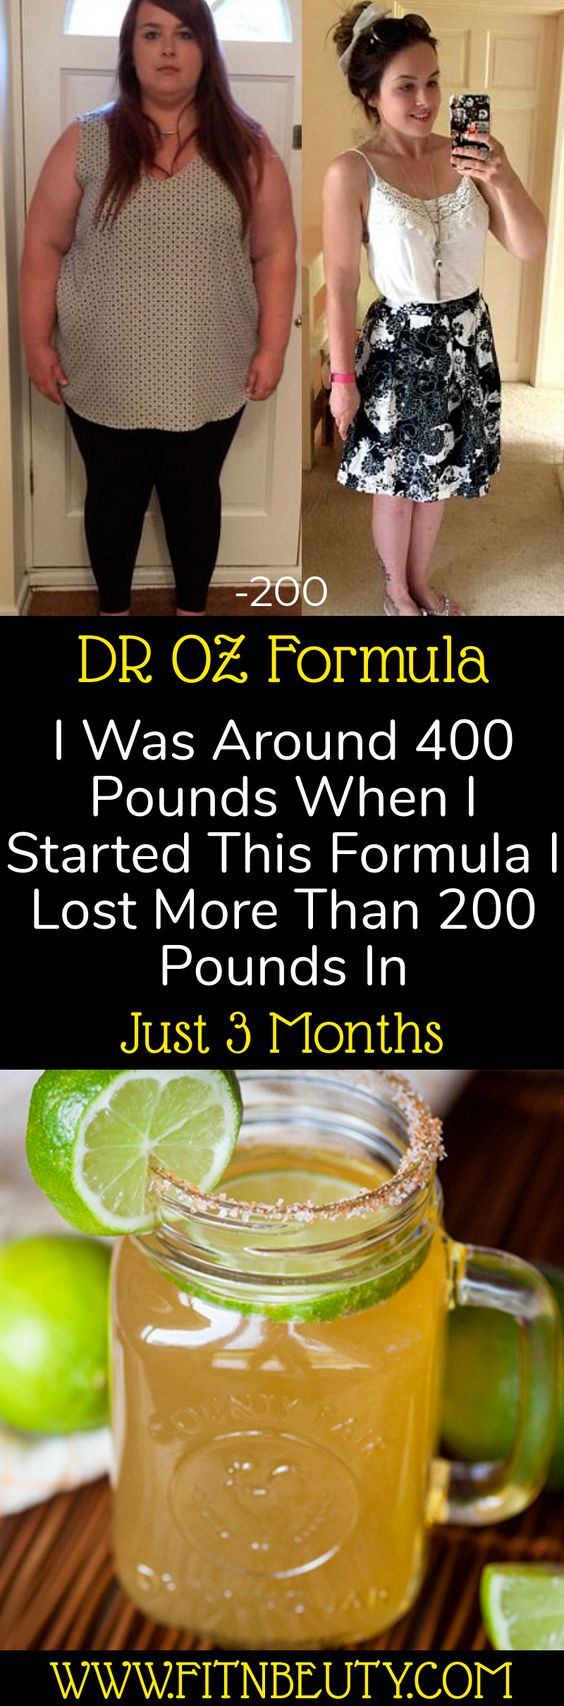 DR OZ Formula I Was Around 400 Pounds When I Started This Formula I Lost More Than 200 Pounds In Just 3 Months